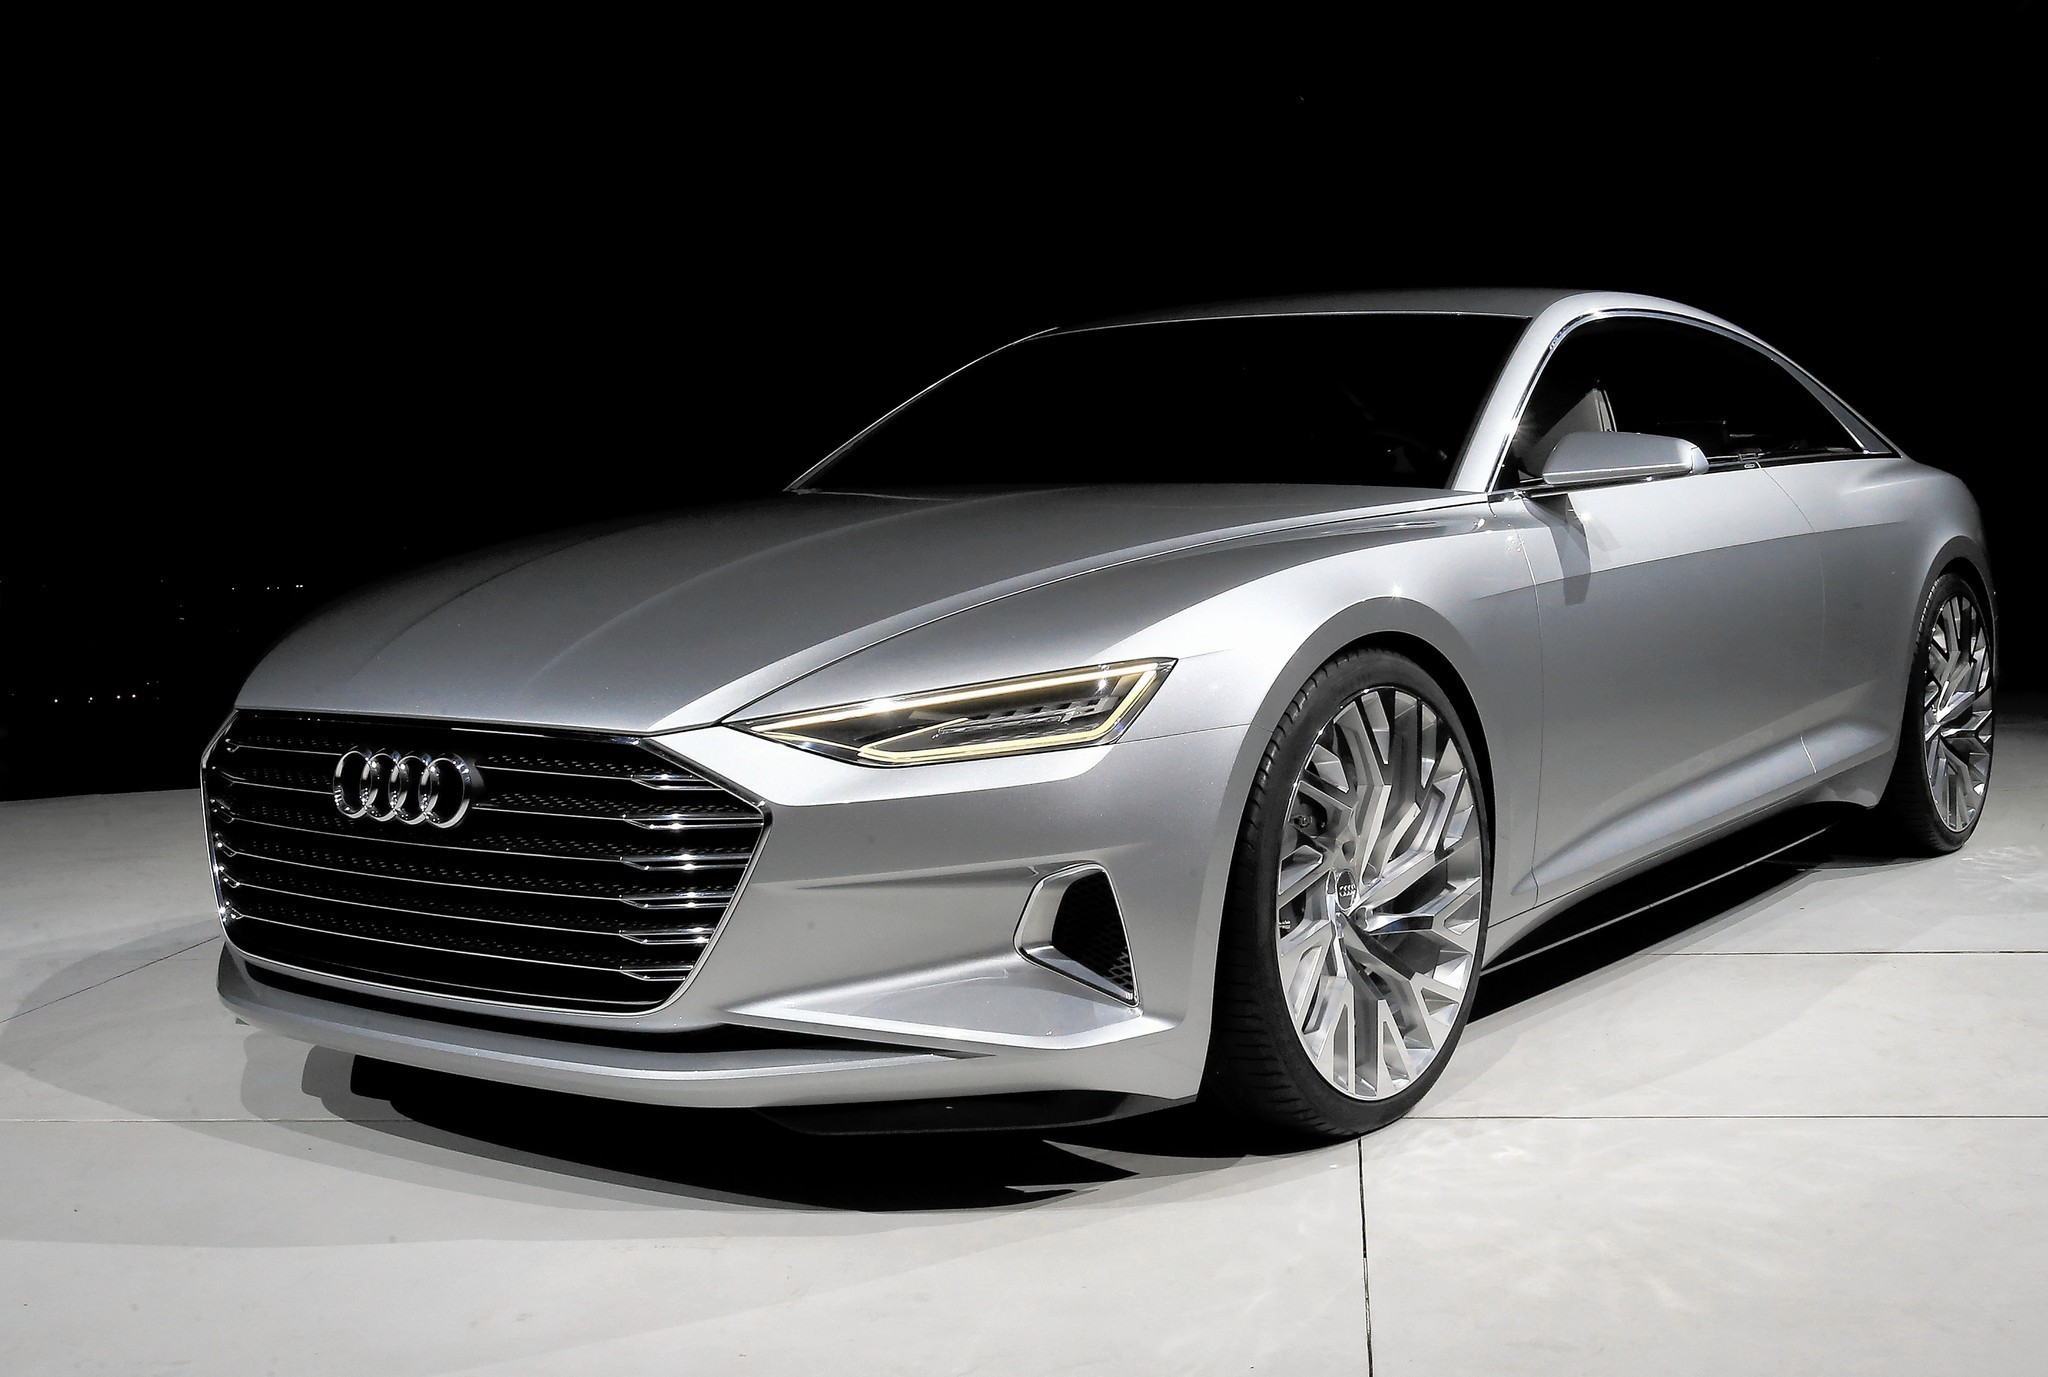 Audi Prologue Concept Car Foreshadows A Sultry Luxurious